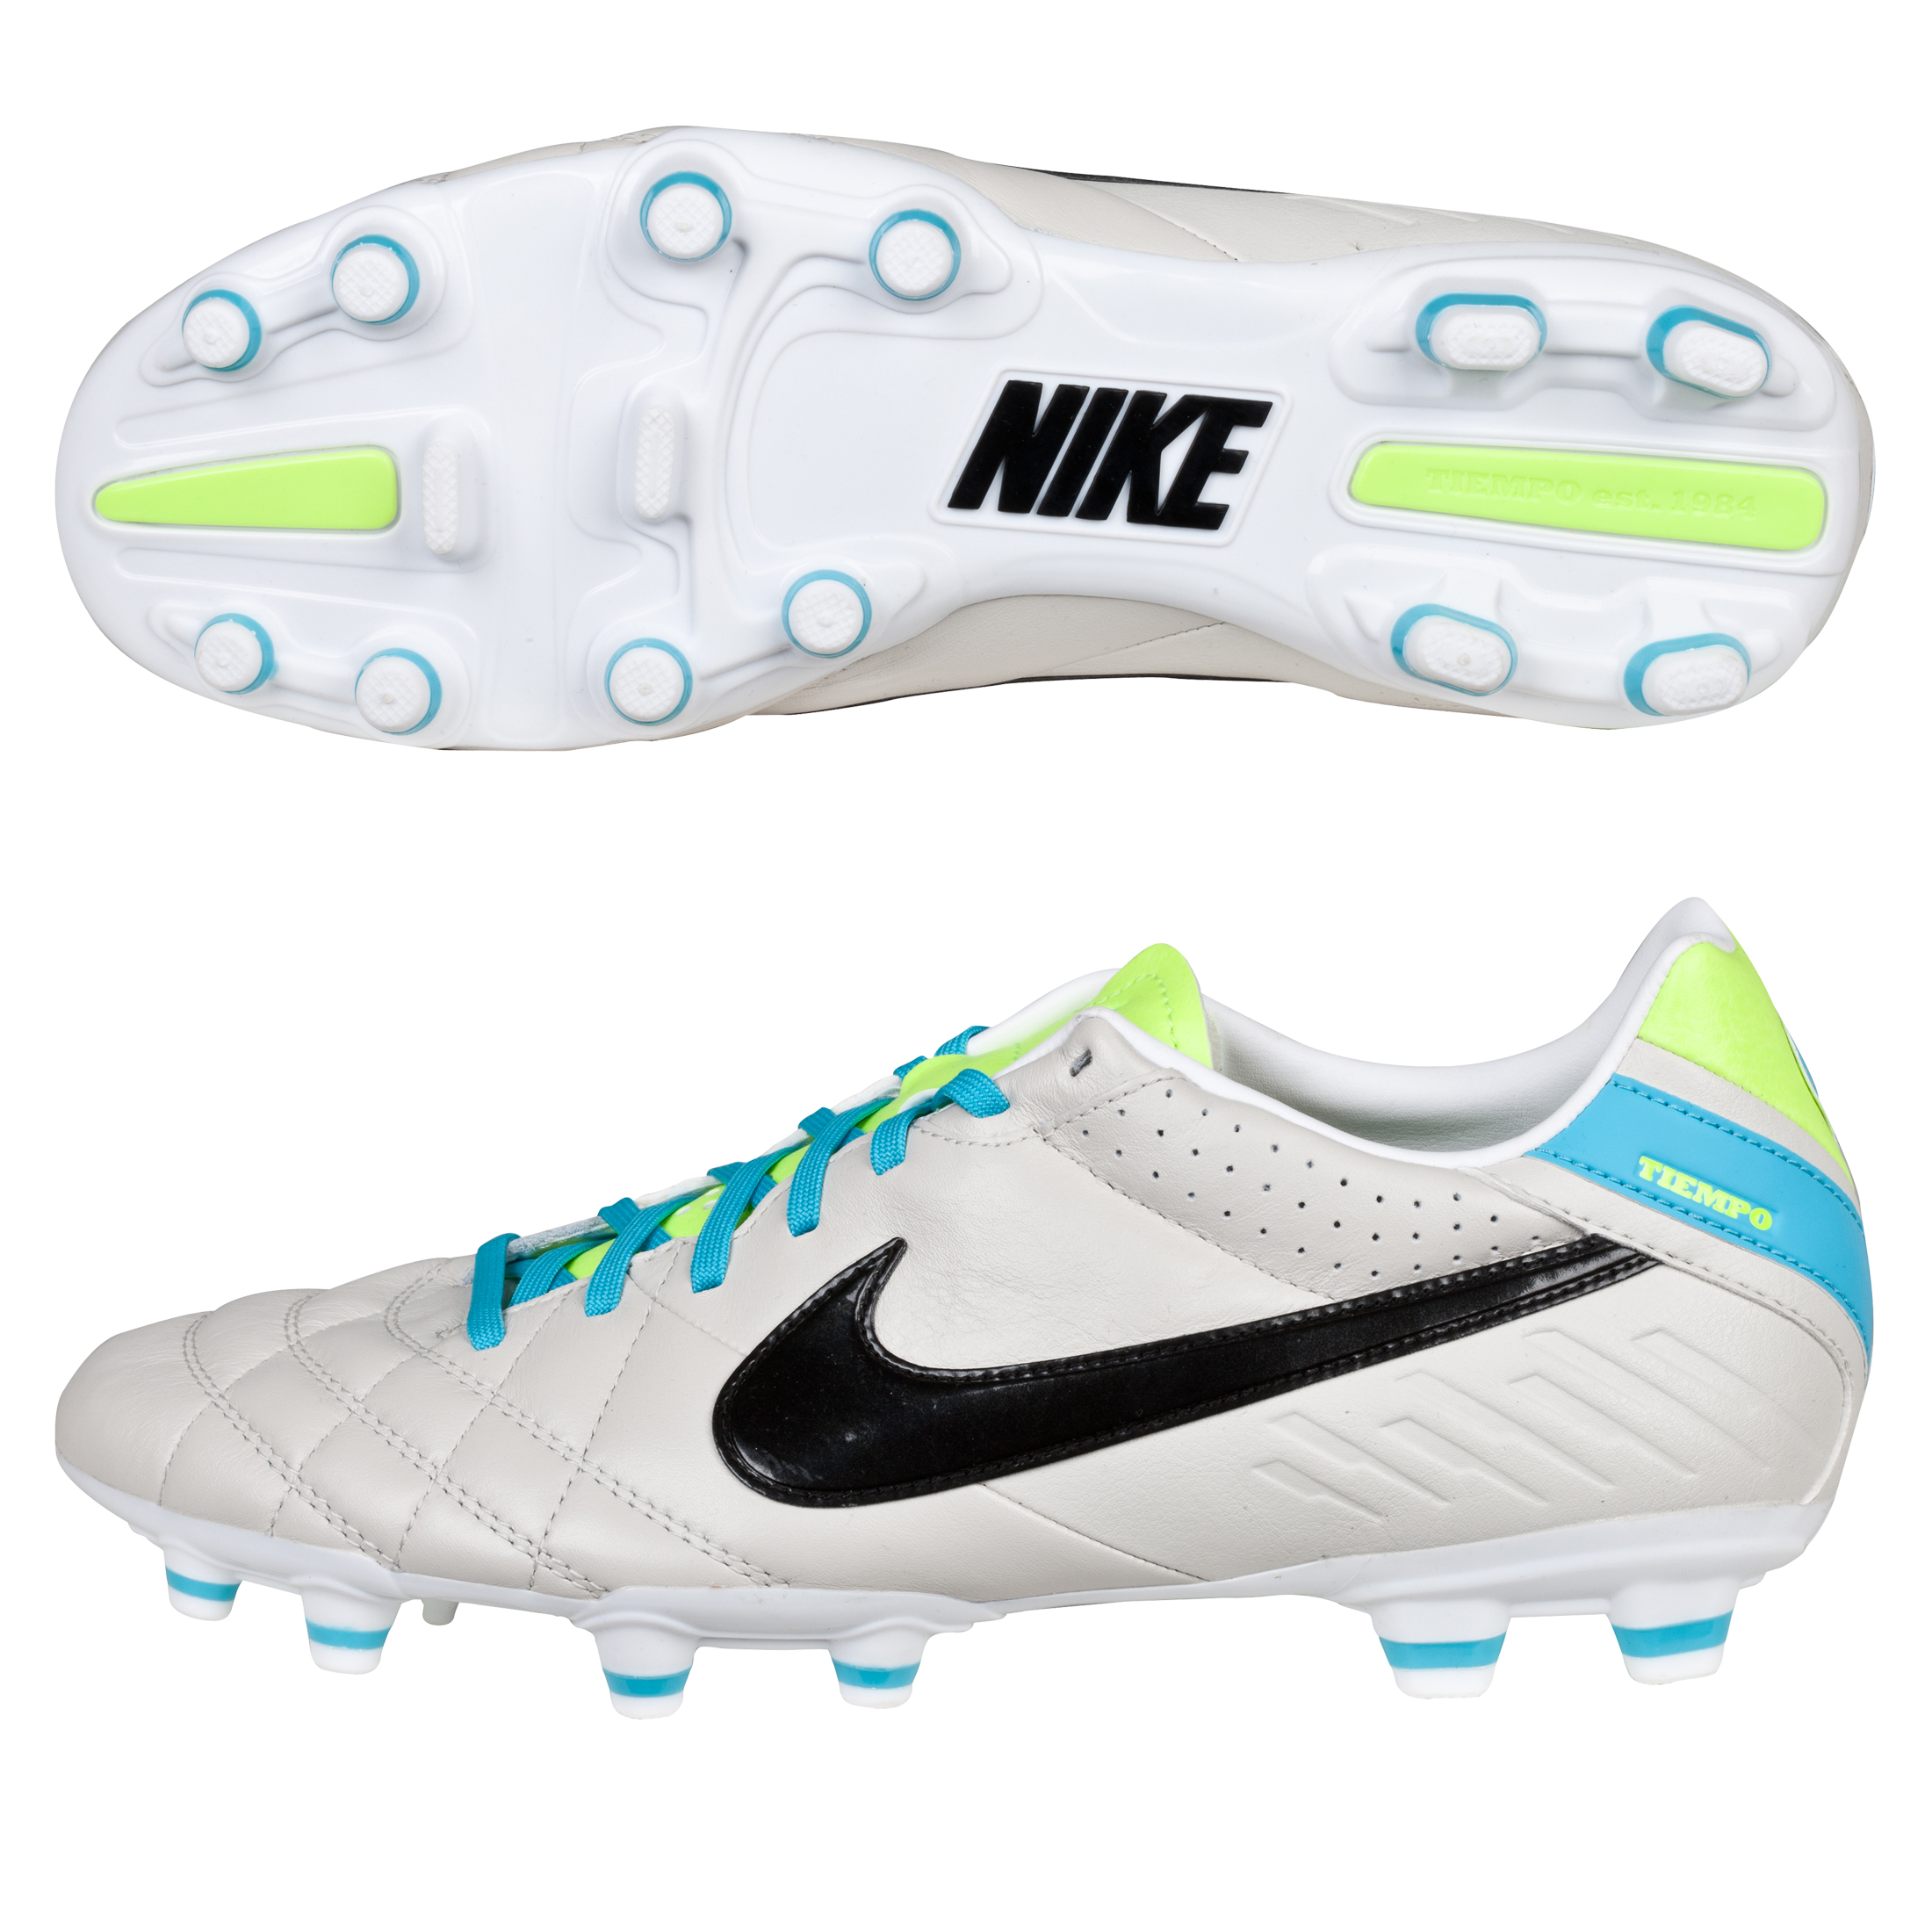 Nike Tiempo Mystic IV Firm Ground Football Boots Lt Grey